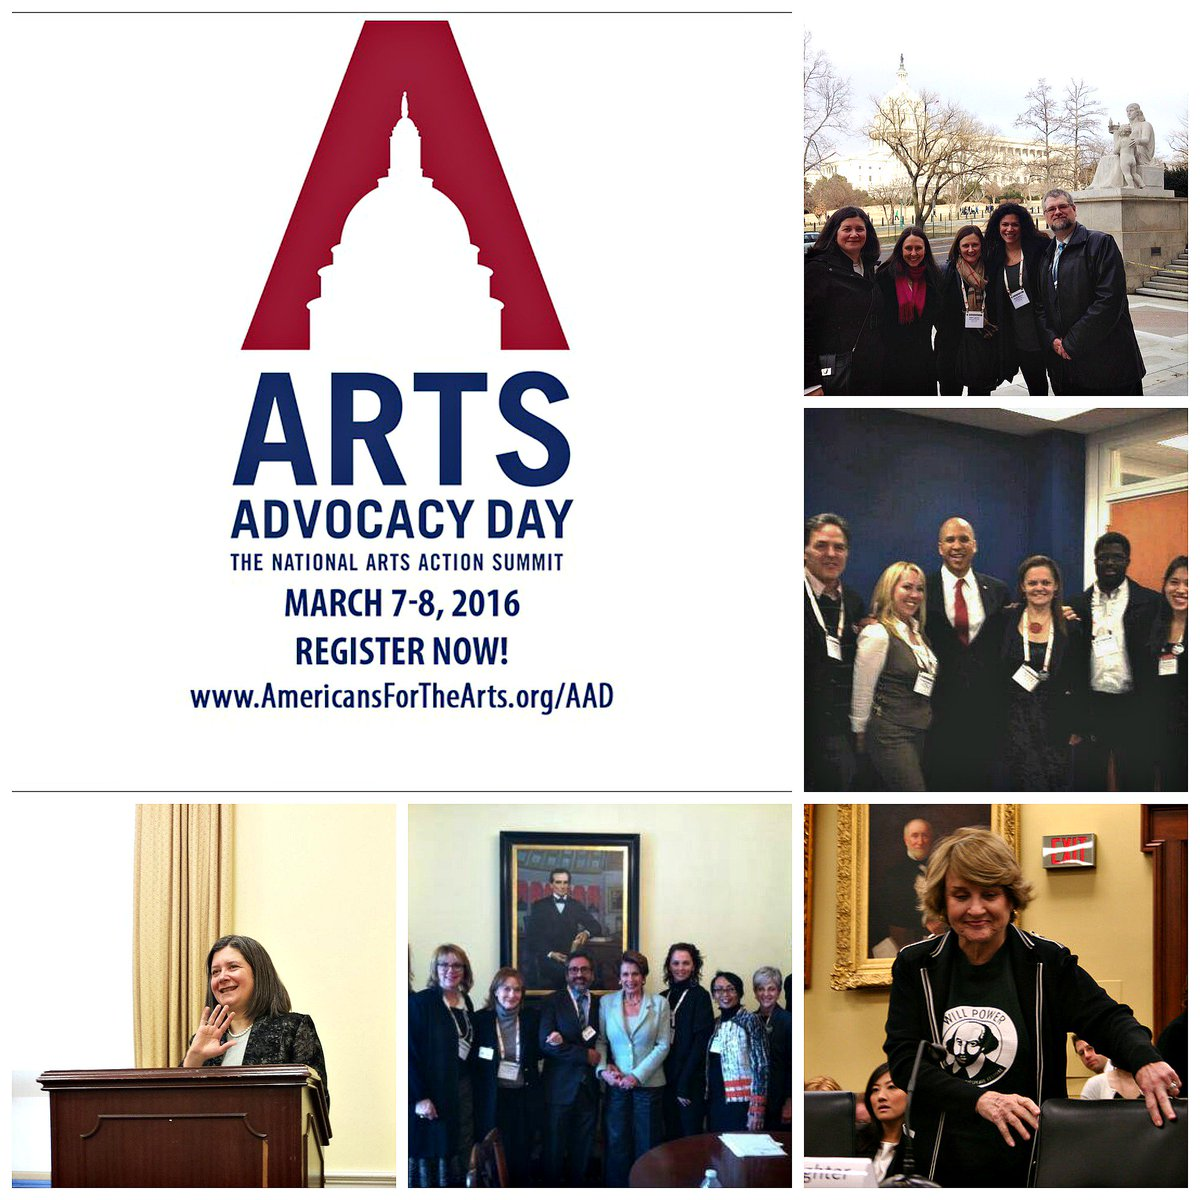 Arts Advocacy Day is here! Take action, even if you can't make it to The Hill: https://t.co/RXsQWSDAOz #AAD2016 https://t.co/2mQbmy7jgh